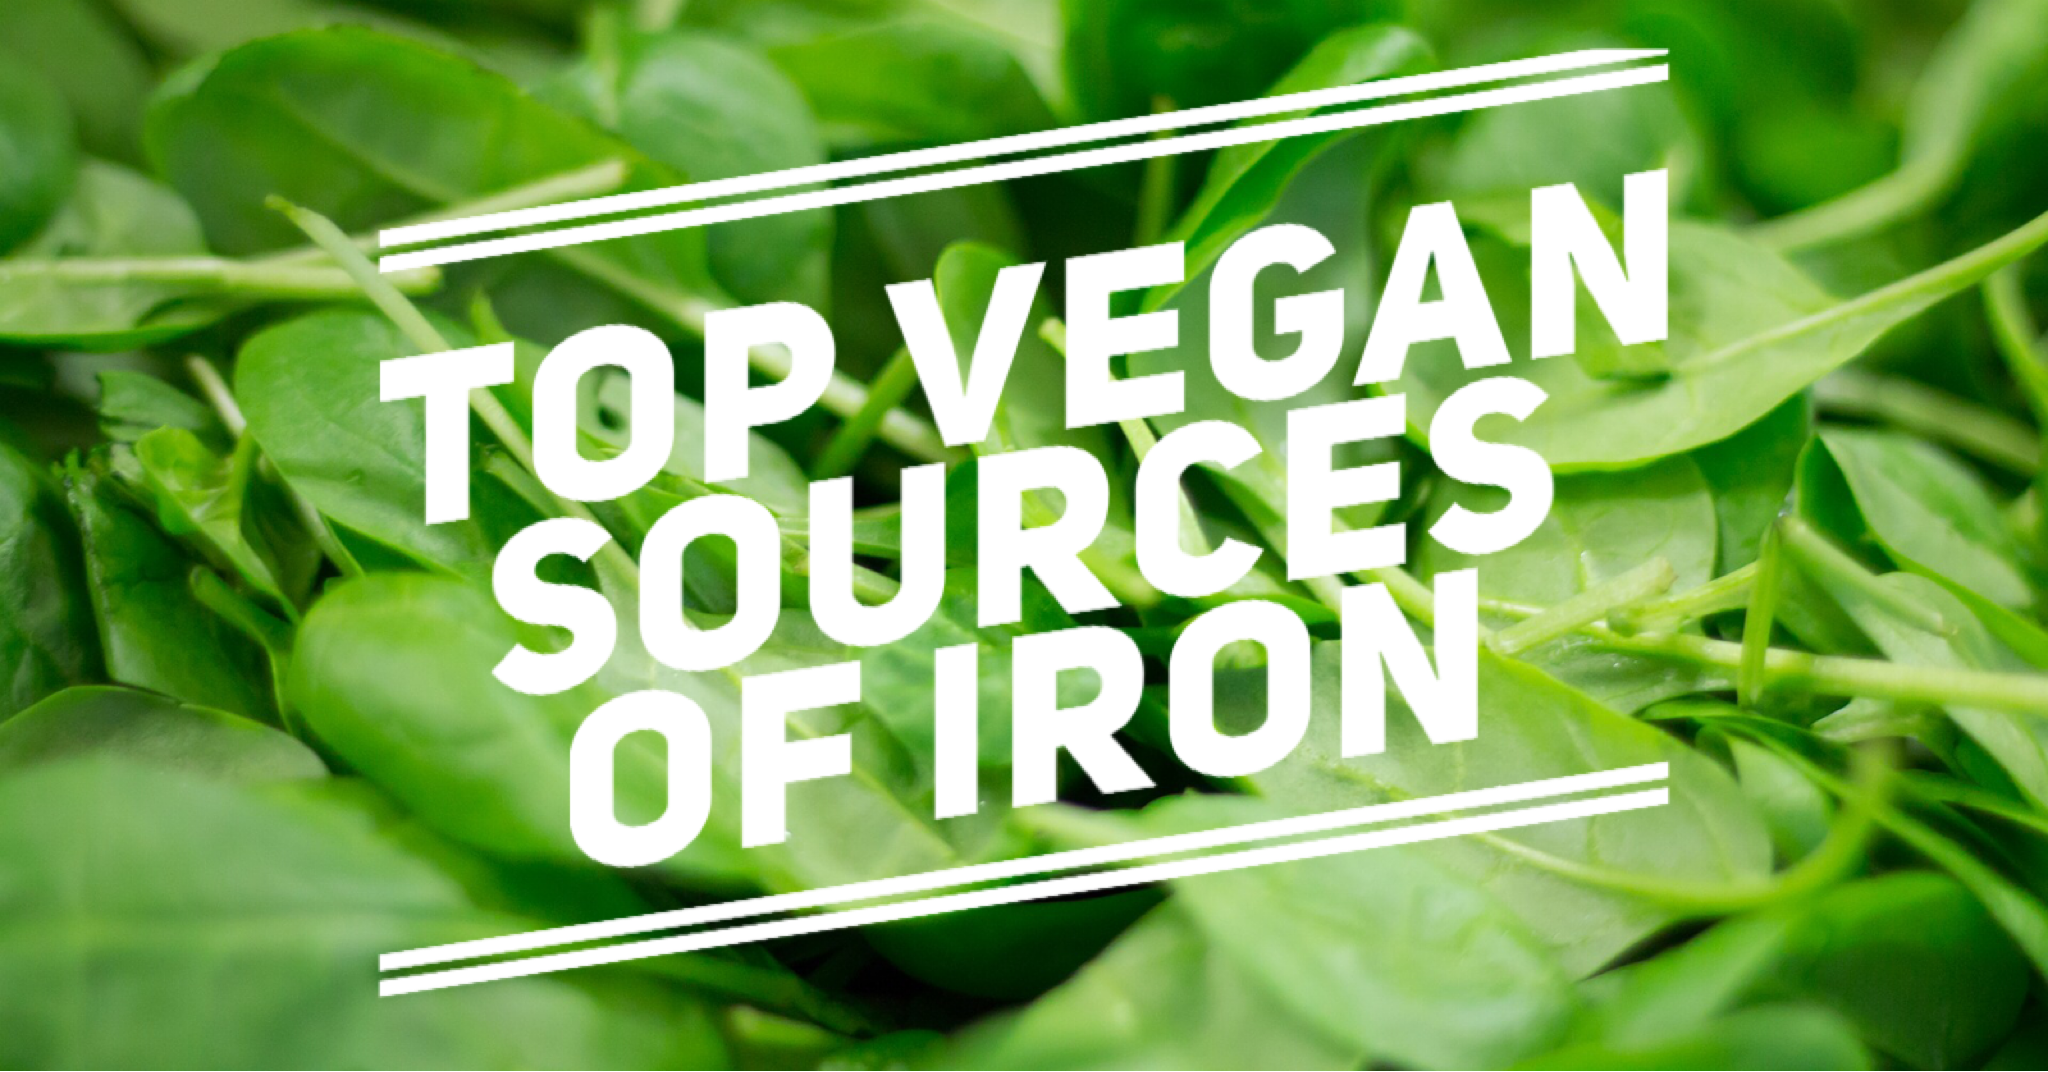 Top vegan sources iron list